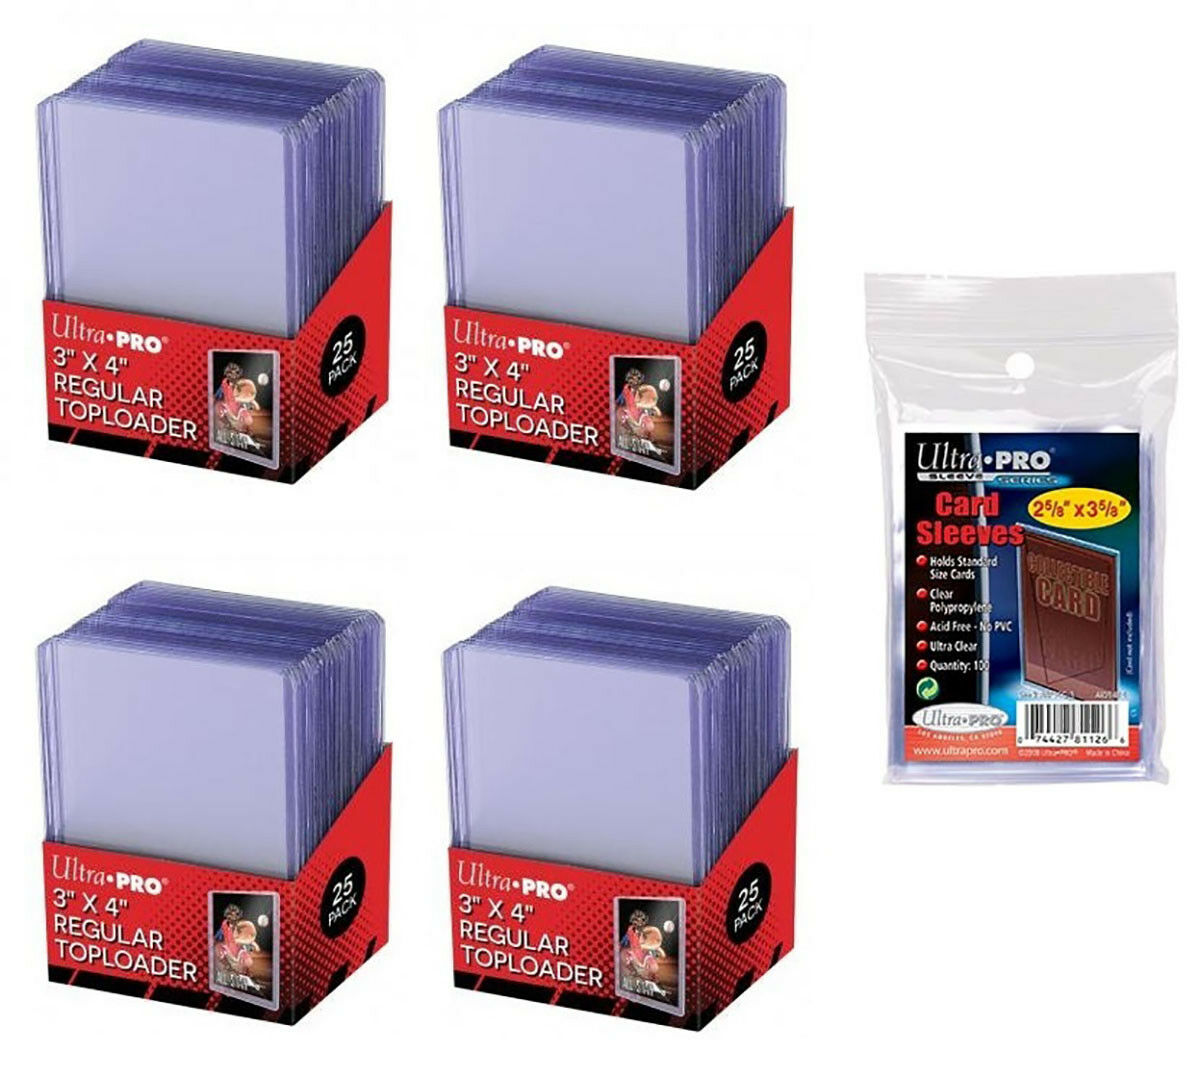 c3442575f31 100 ULTRA PRO 3x4 Sports Card Toploaders + FREE SLEEVES FREE SHIPPING